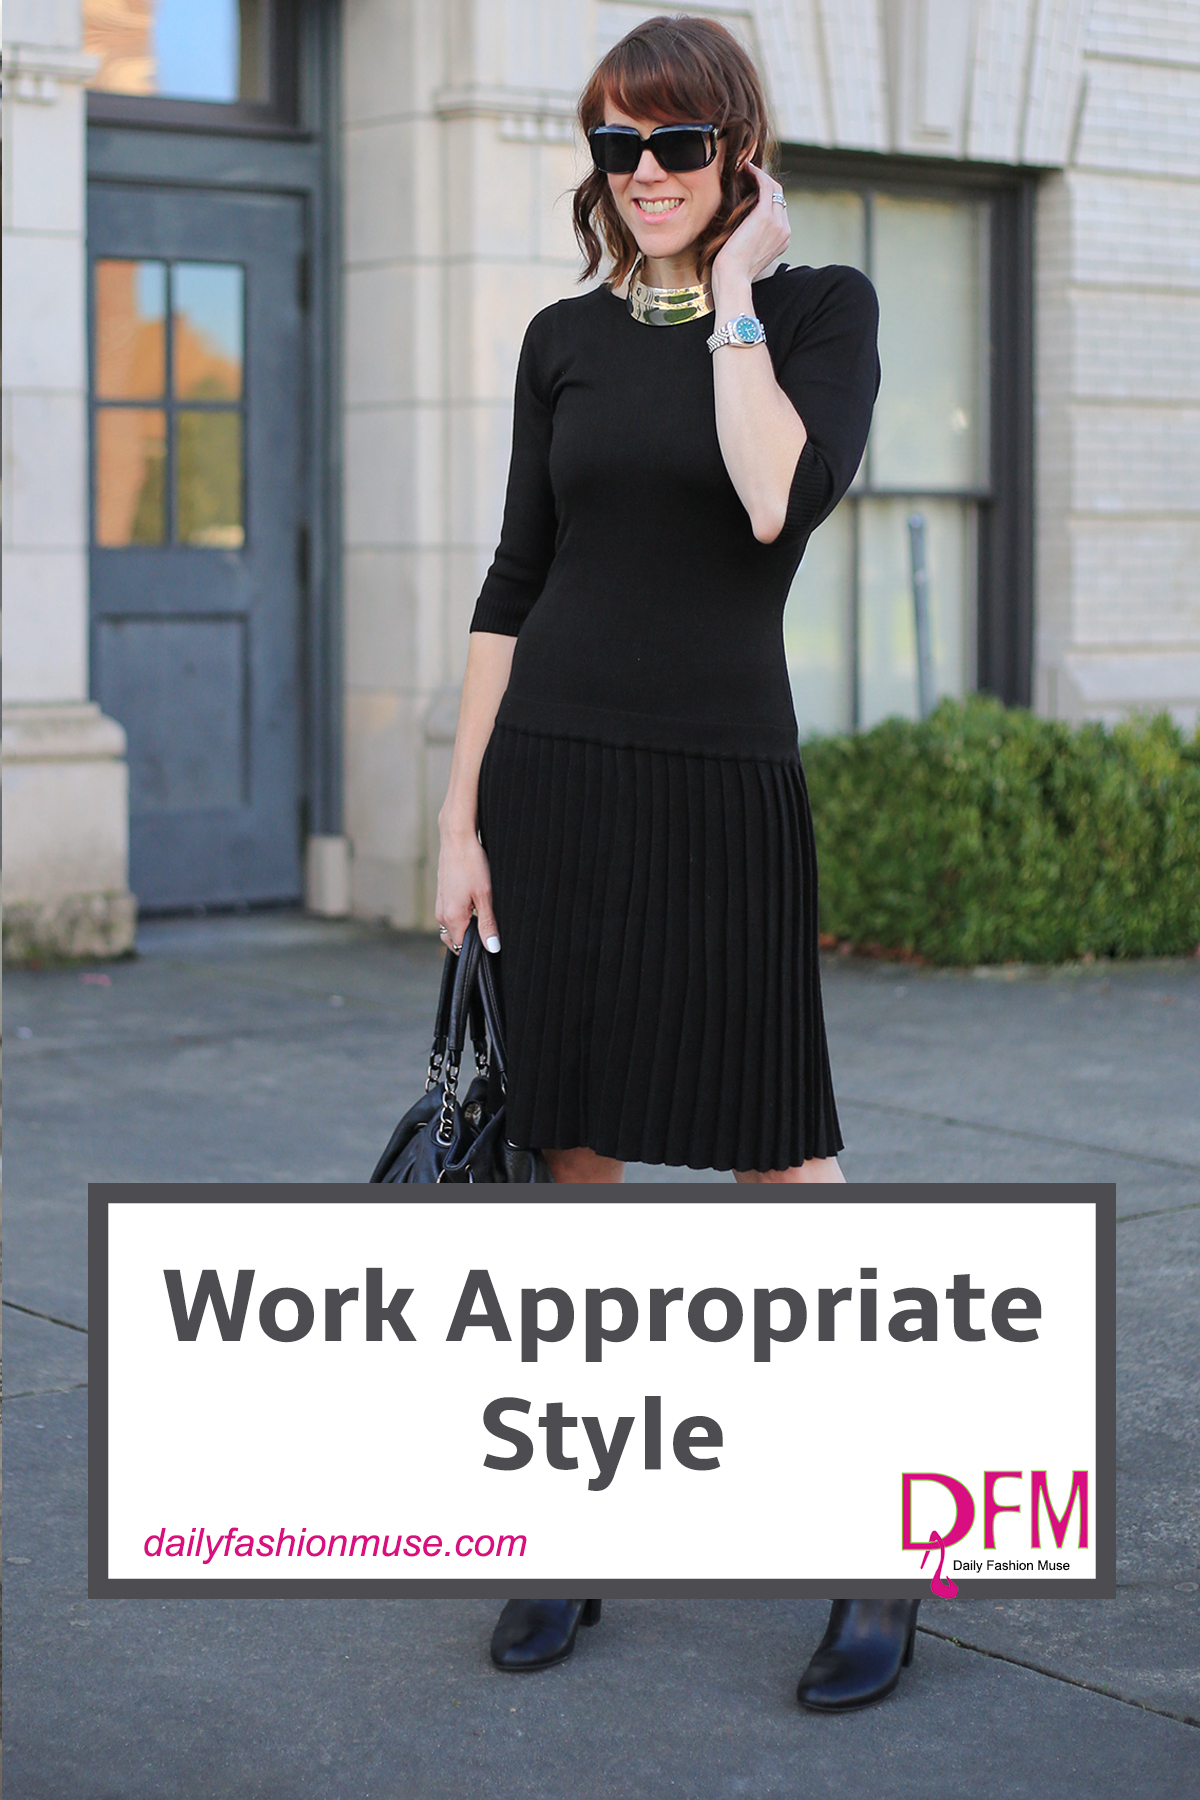 What Is Work Appropriate Style